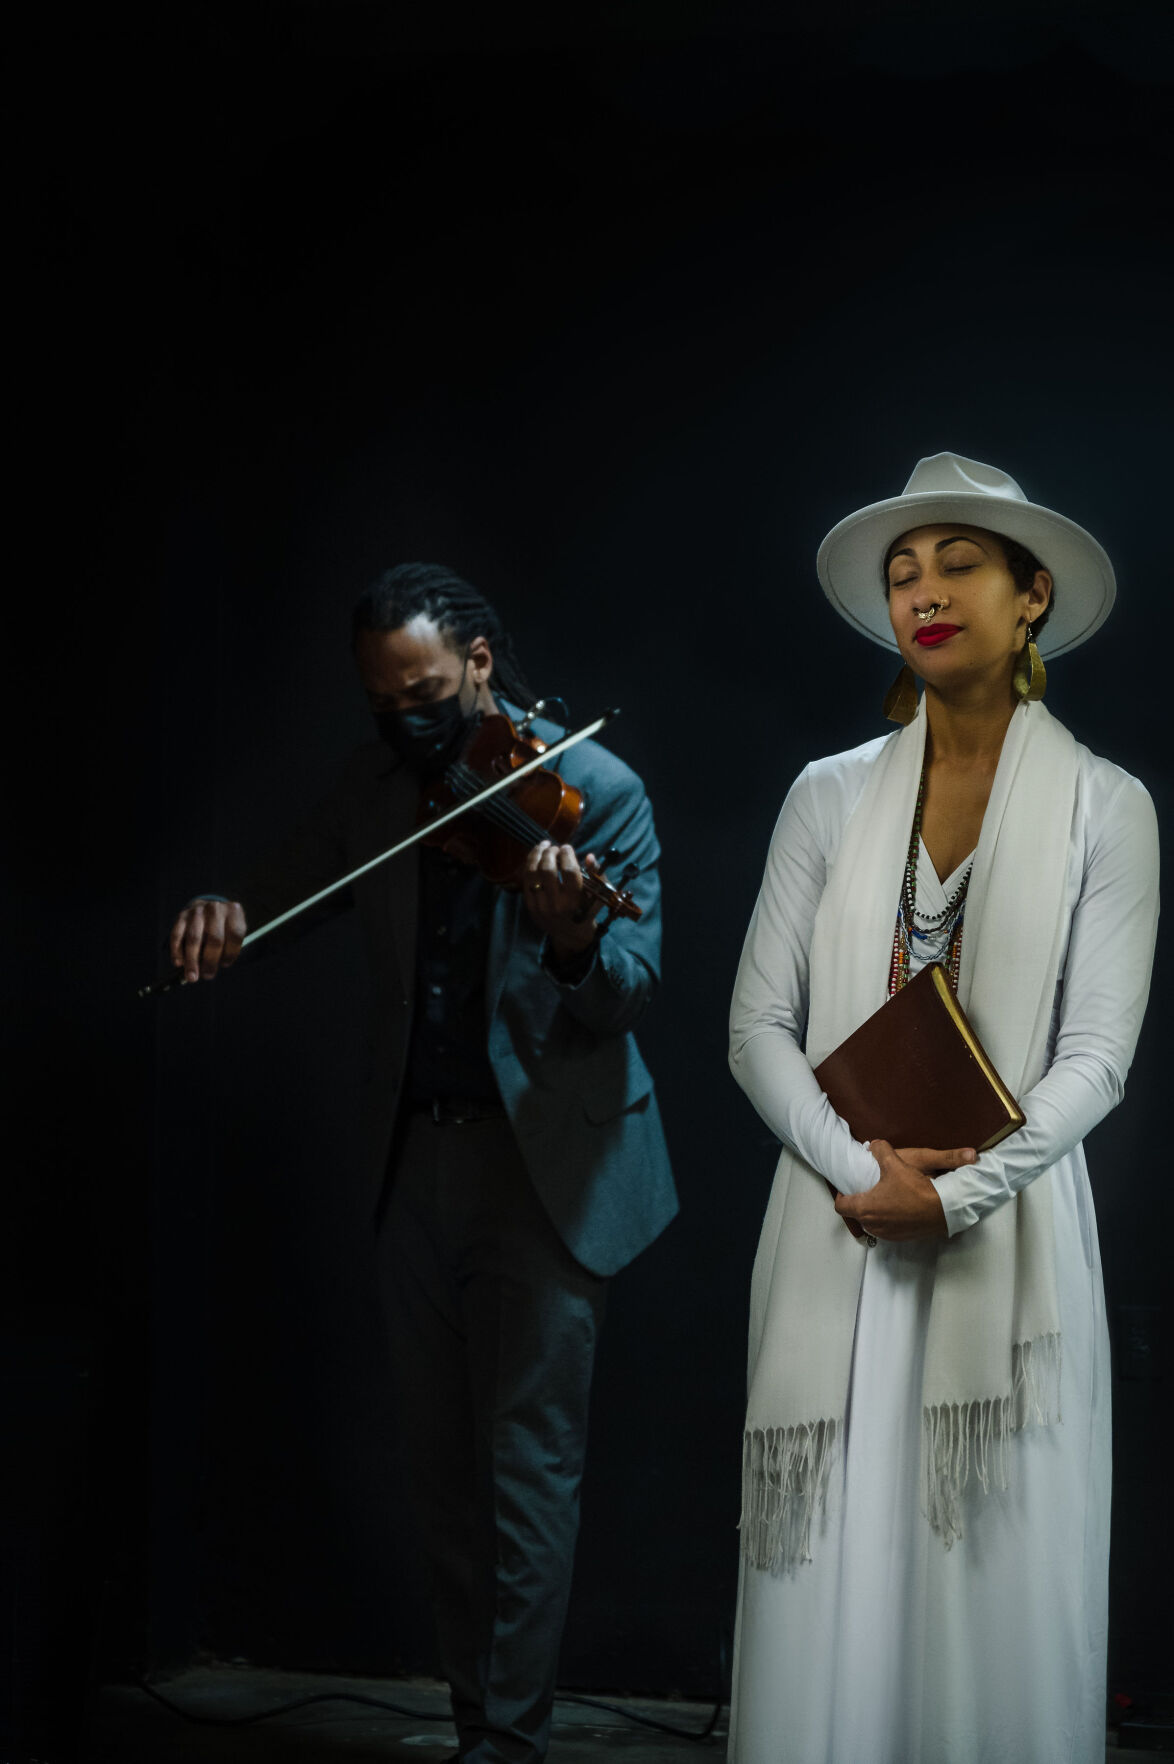 T-Ray the violinist and Sunni Patterson